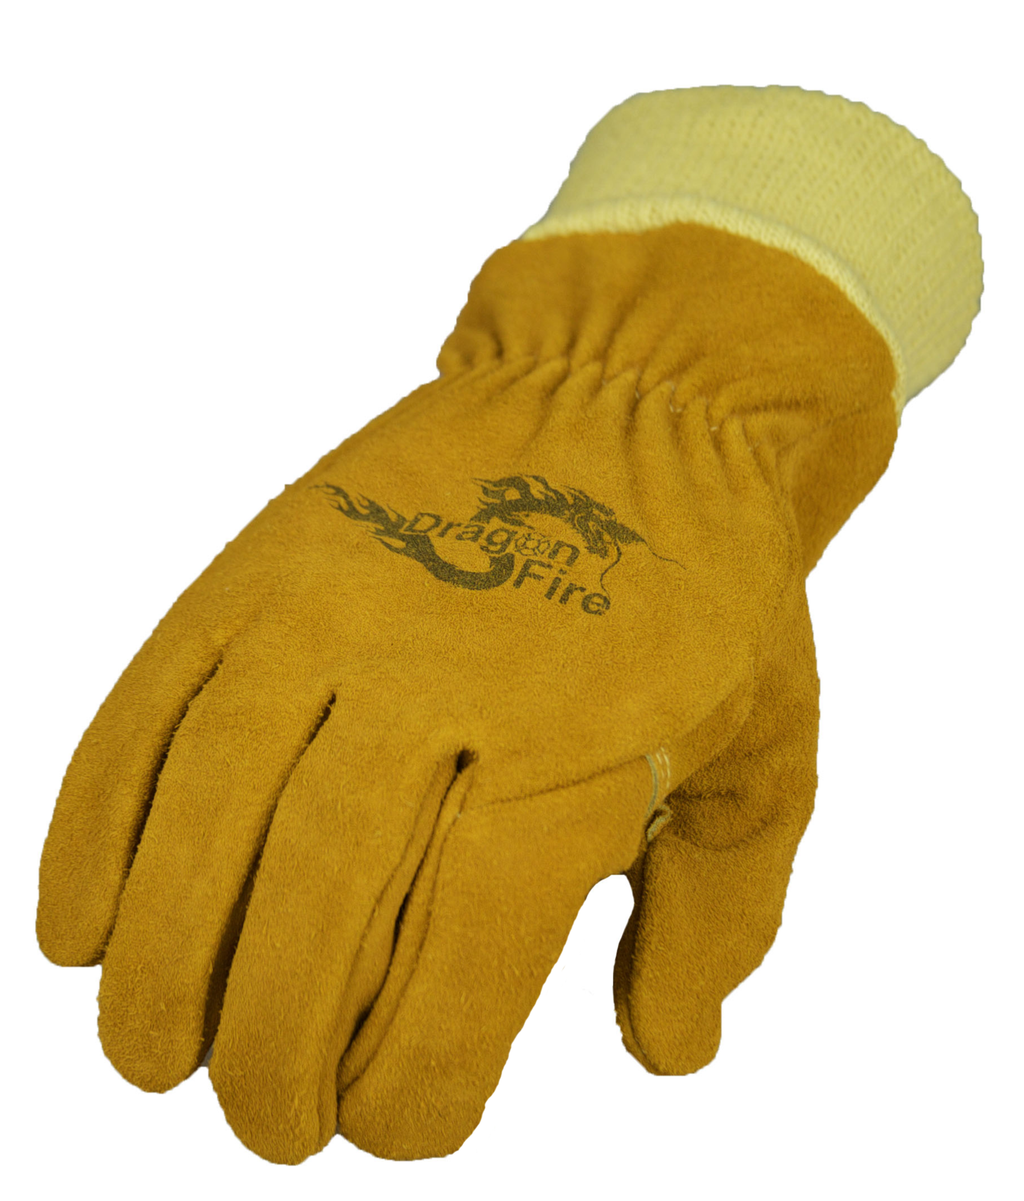 Dragon Fire Wildland Firefighting Glove - mtrsuperstore